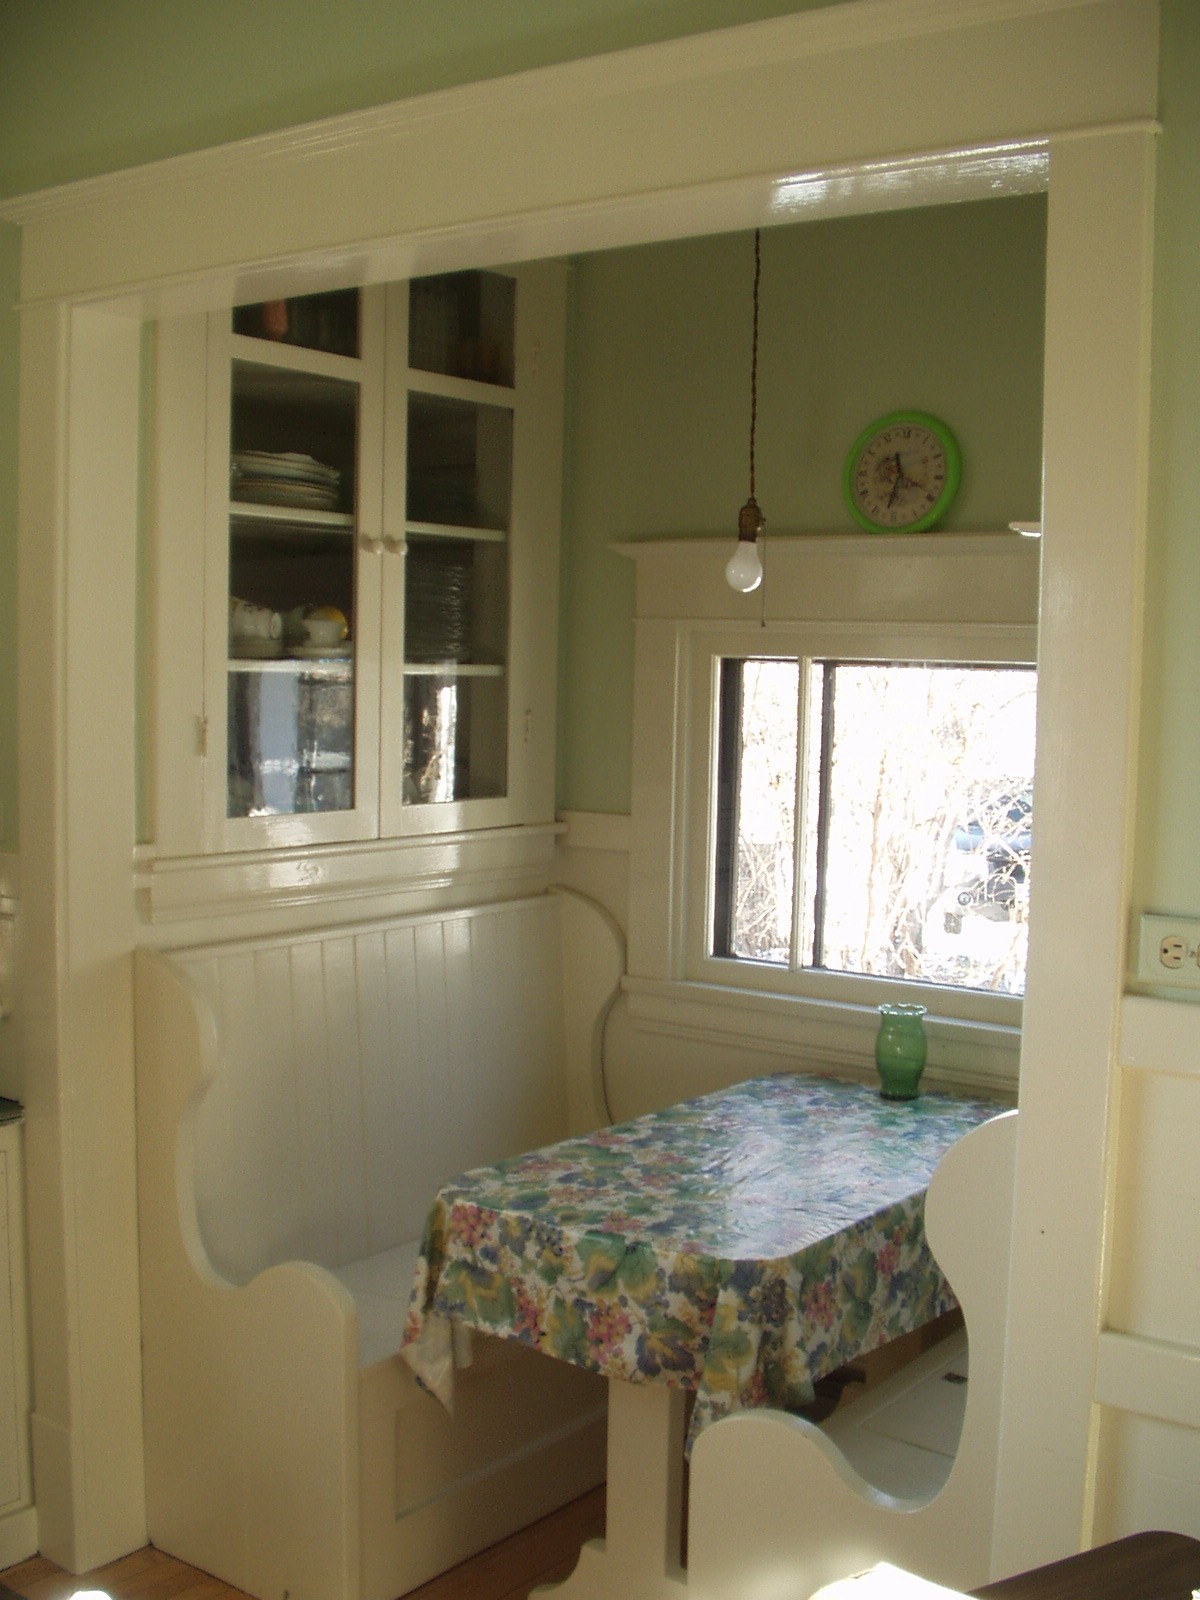 An Original 1920s Kitchen Nook Complete With Pendant Light Fixture